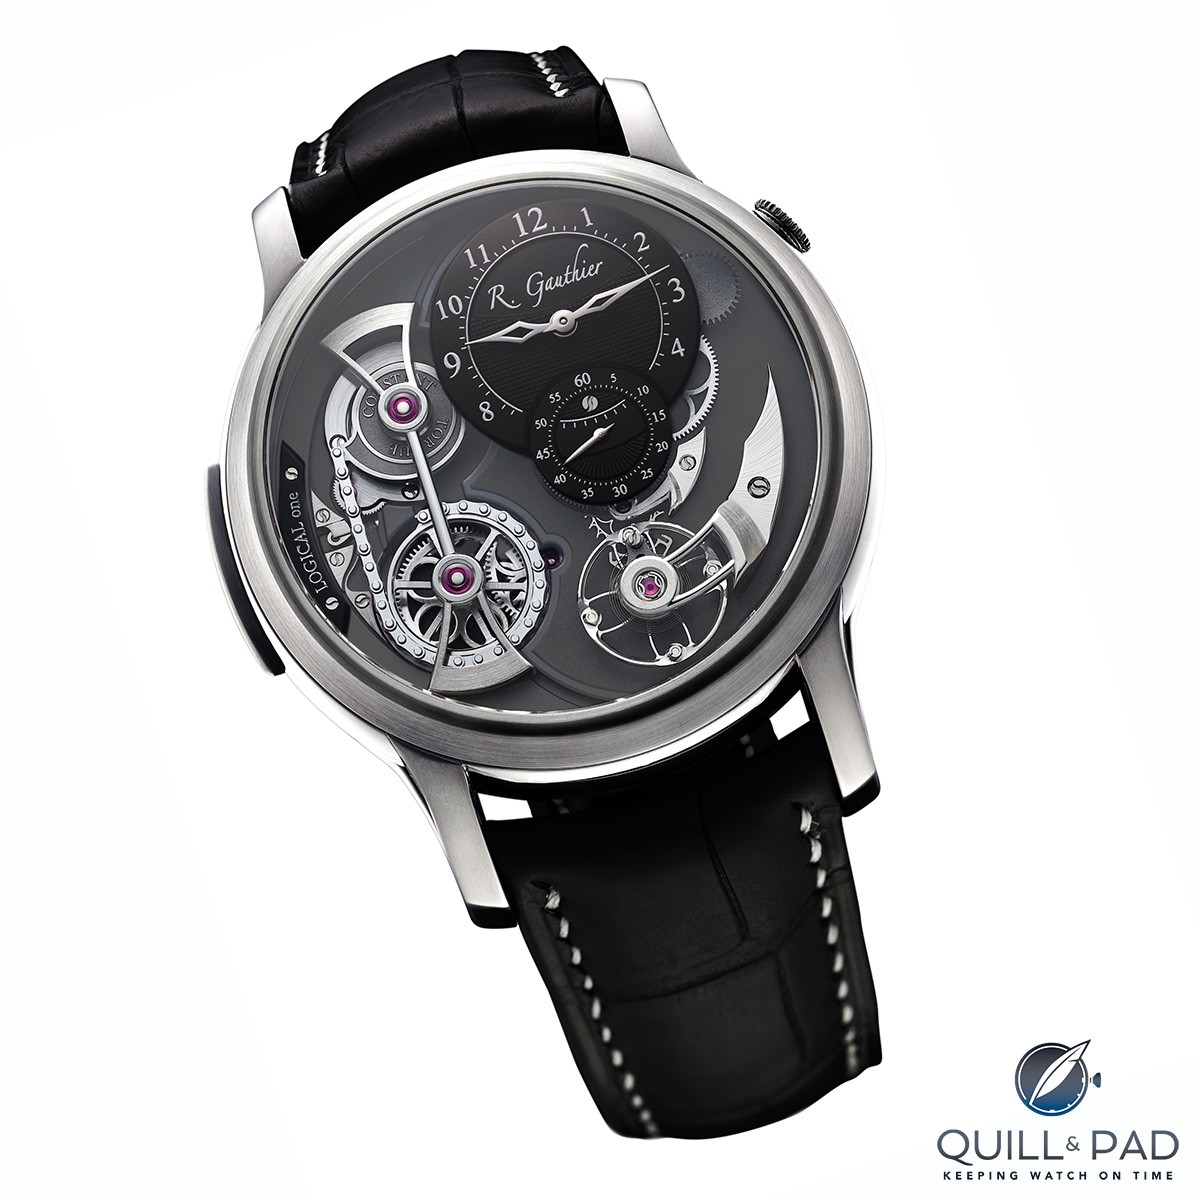 Romain Gauthier Logical One in natural titanium with black guilloche dials